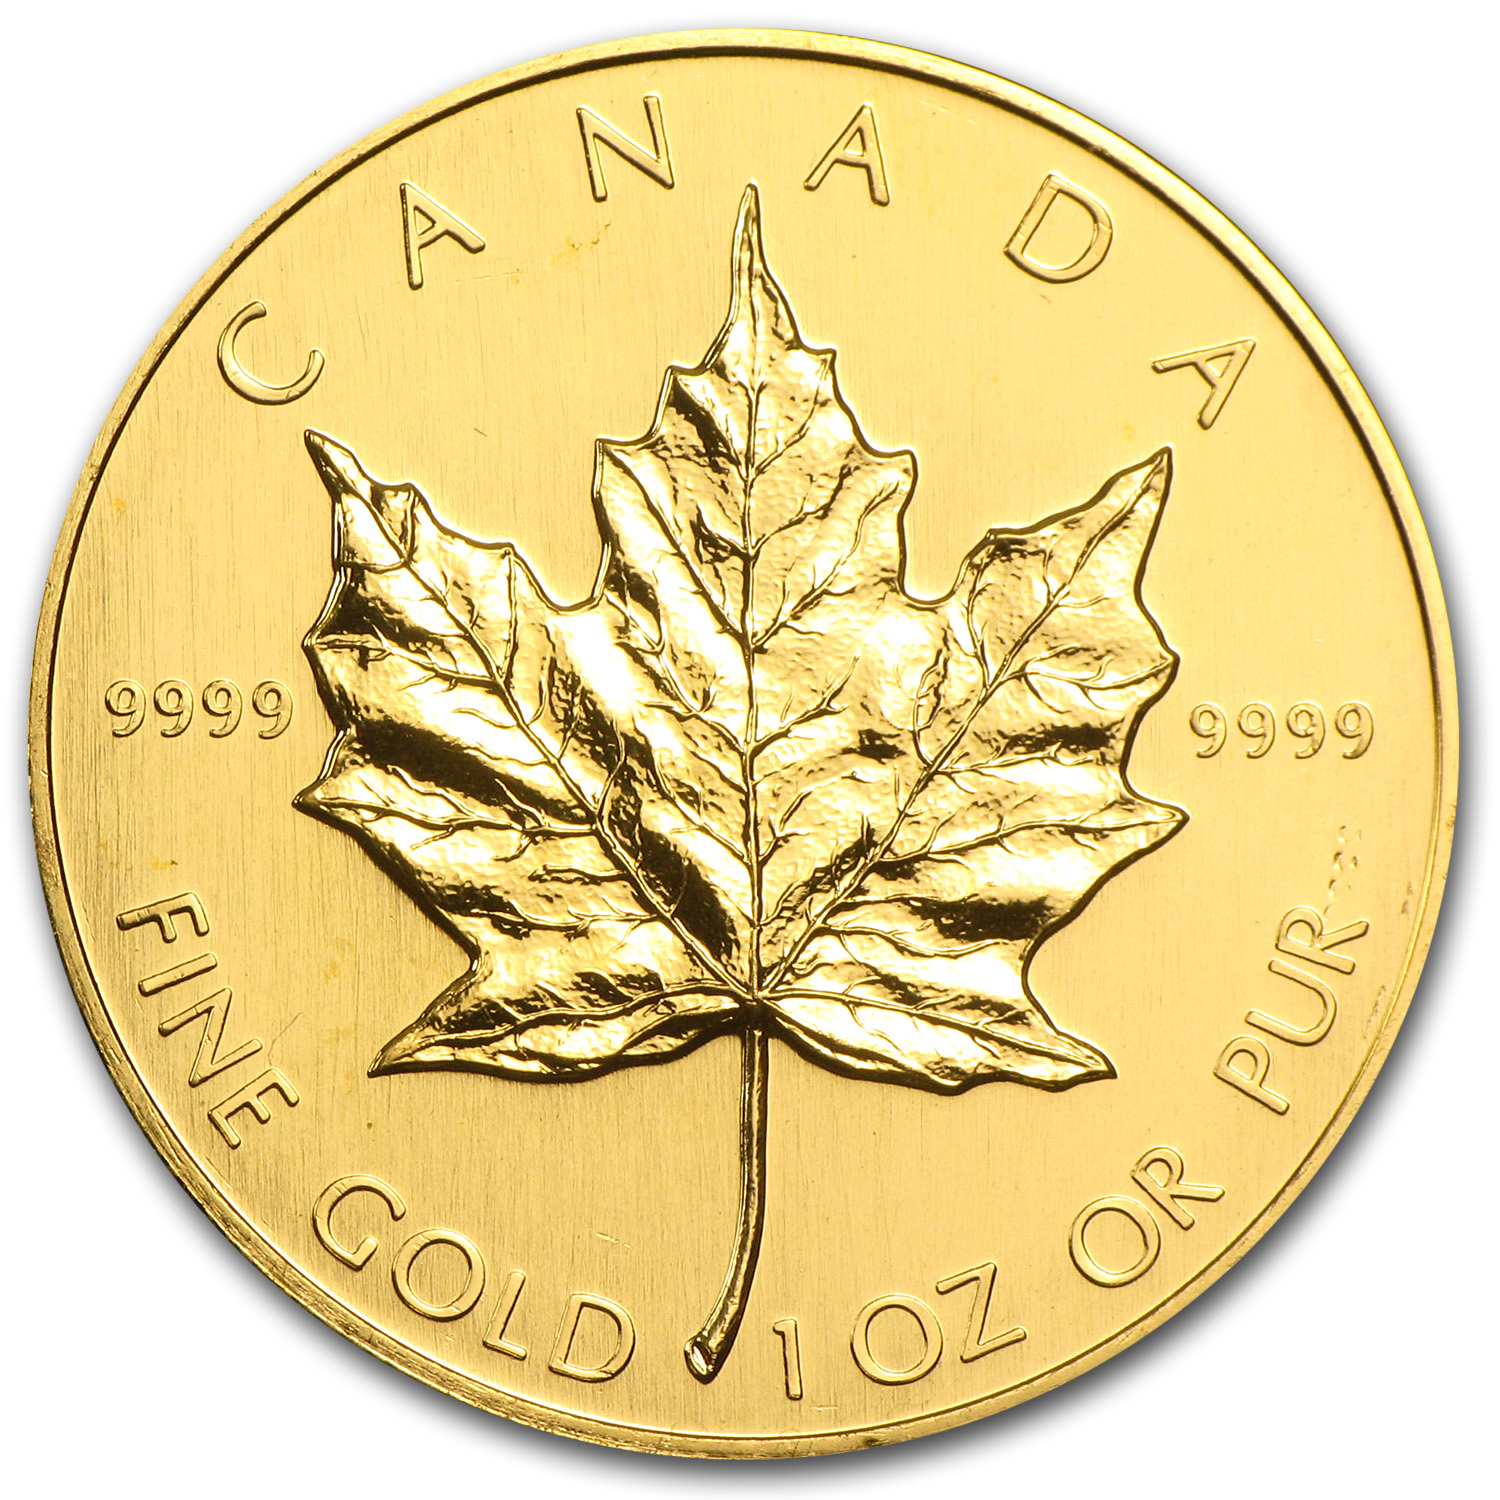 1989 Canada 1 oz Gold Maple Leaf BU